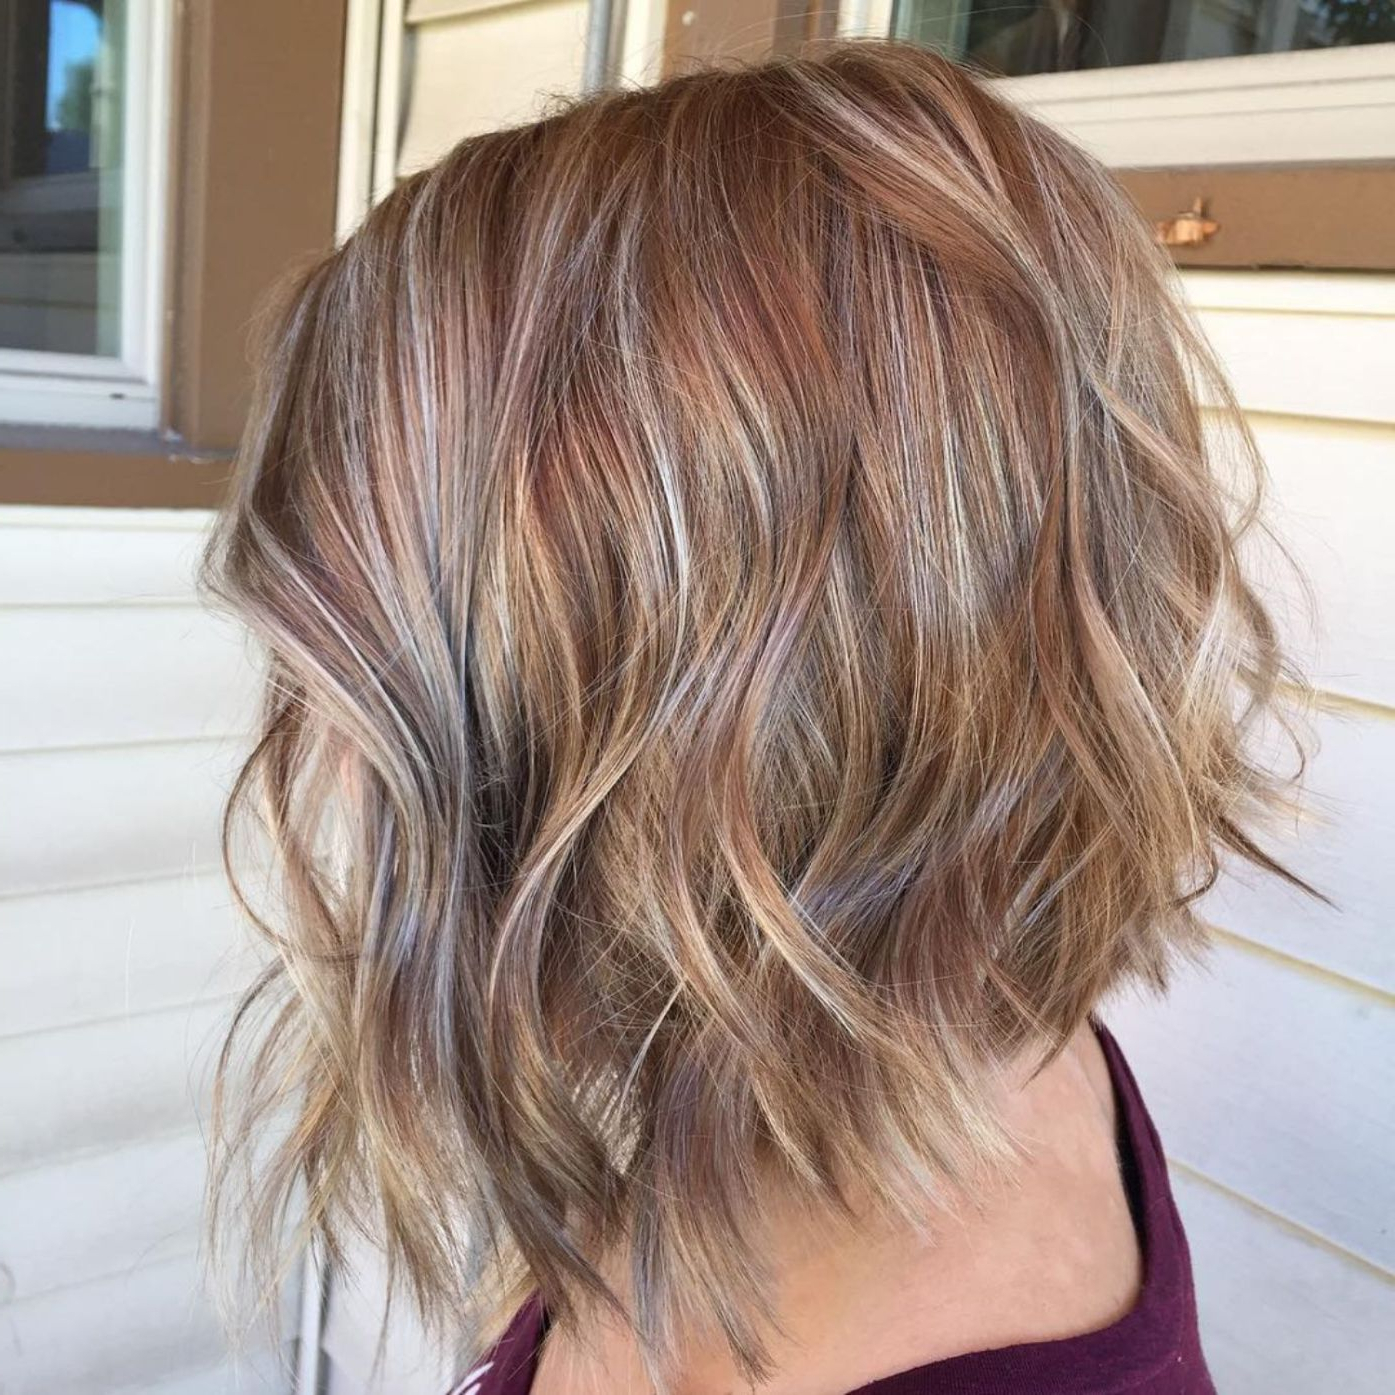 50 Trendy Inverted Bob Haircuts | Colour | Pinterest | Hair, Hair Pertaining To Choppy Wispy Blonde Balayage Bob Hairstyles (View 3 of 20)